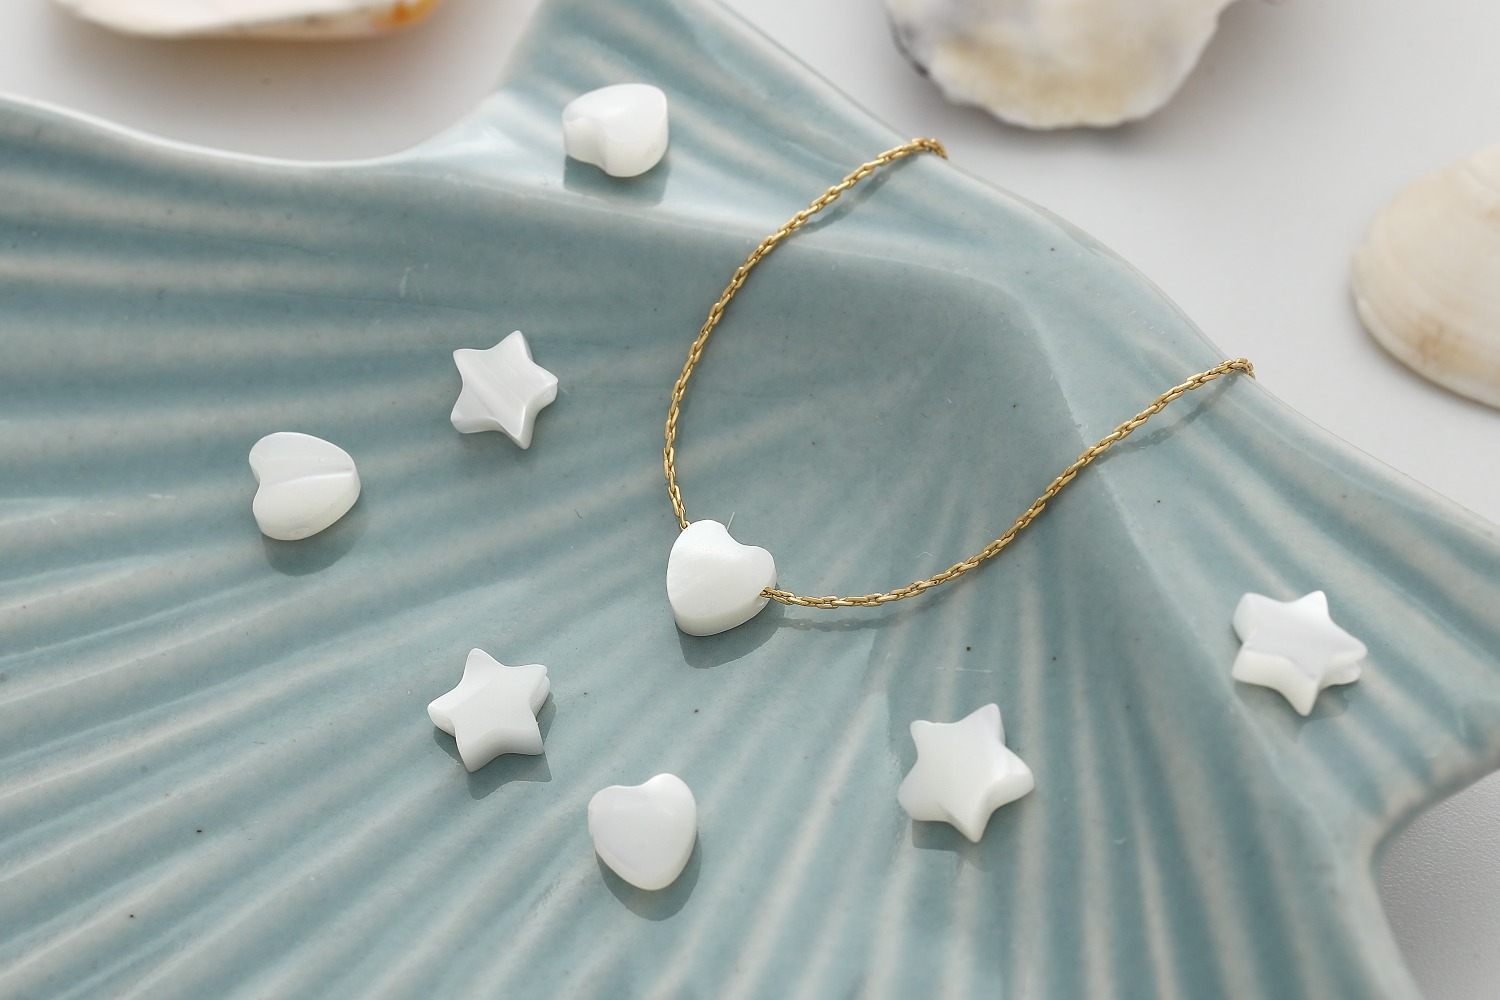 [M12-VC1] Mother-of-pearl beads, Mother-of pearl, Heart charm, Star charm, Jewelry making supplies, Earring making charms, 10 pcs per style (M12-P13, M12-P14)